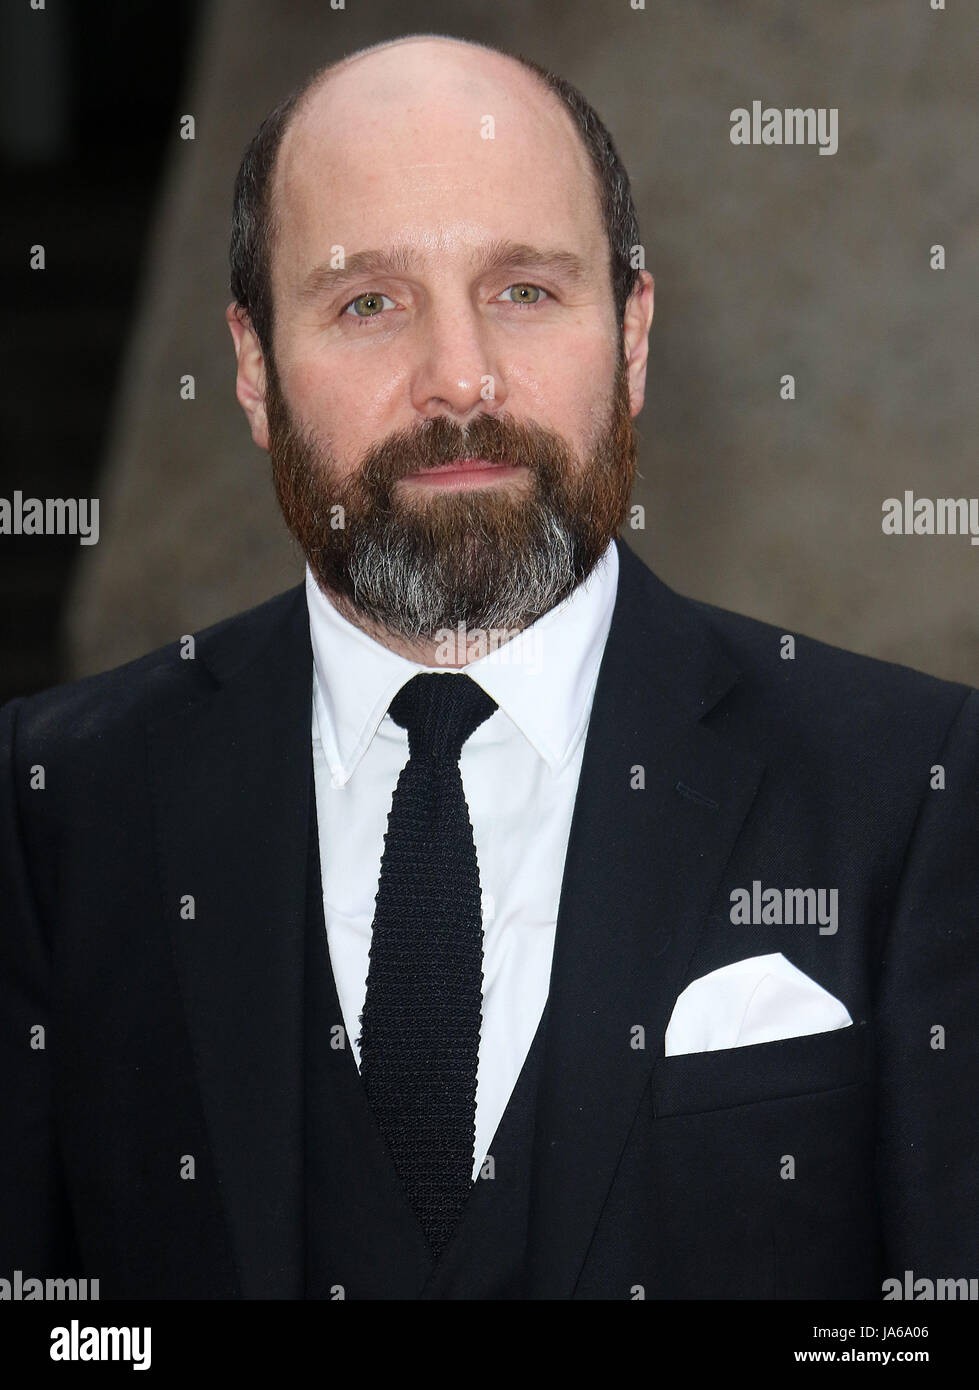 May 08, 2017 - Johnny Harris attending 'Jawbone' UK Premiere at BFI Southbank in London, England, UK - Stock Image